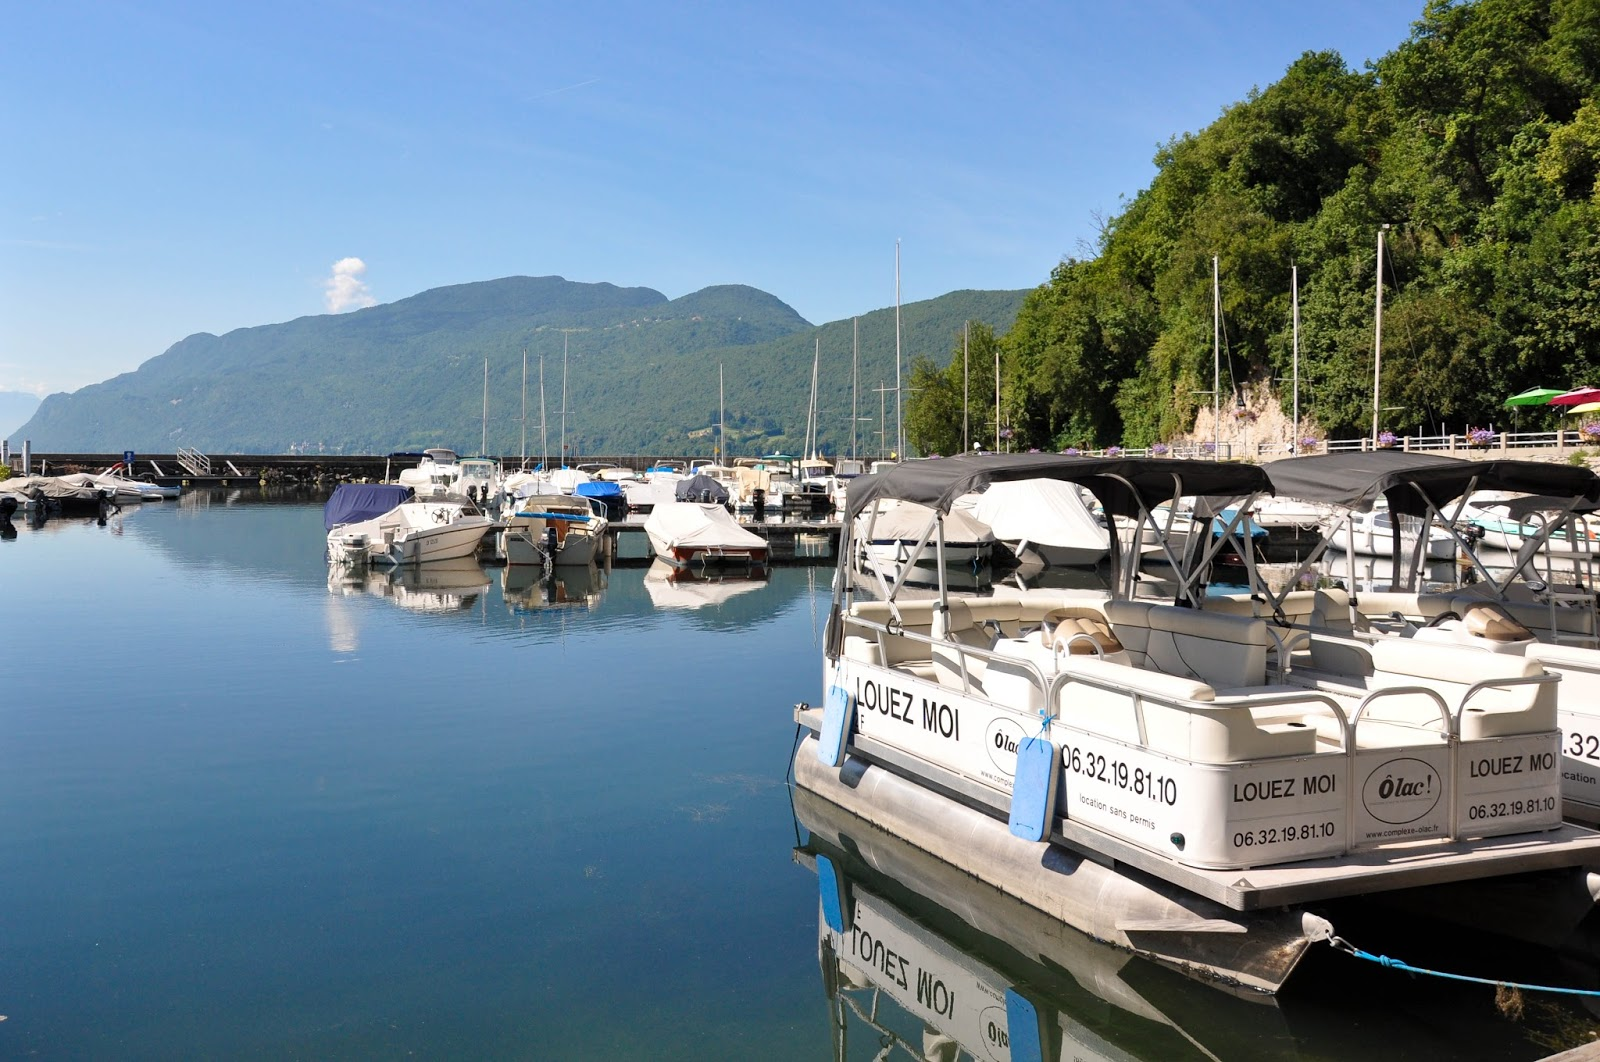 Rental boats on the shores of Lake Bourget, France's largest lake